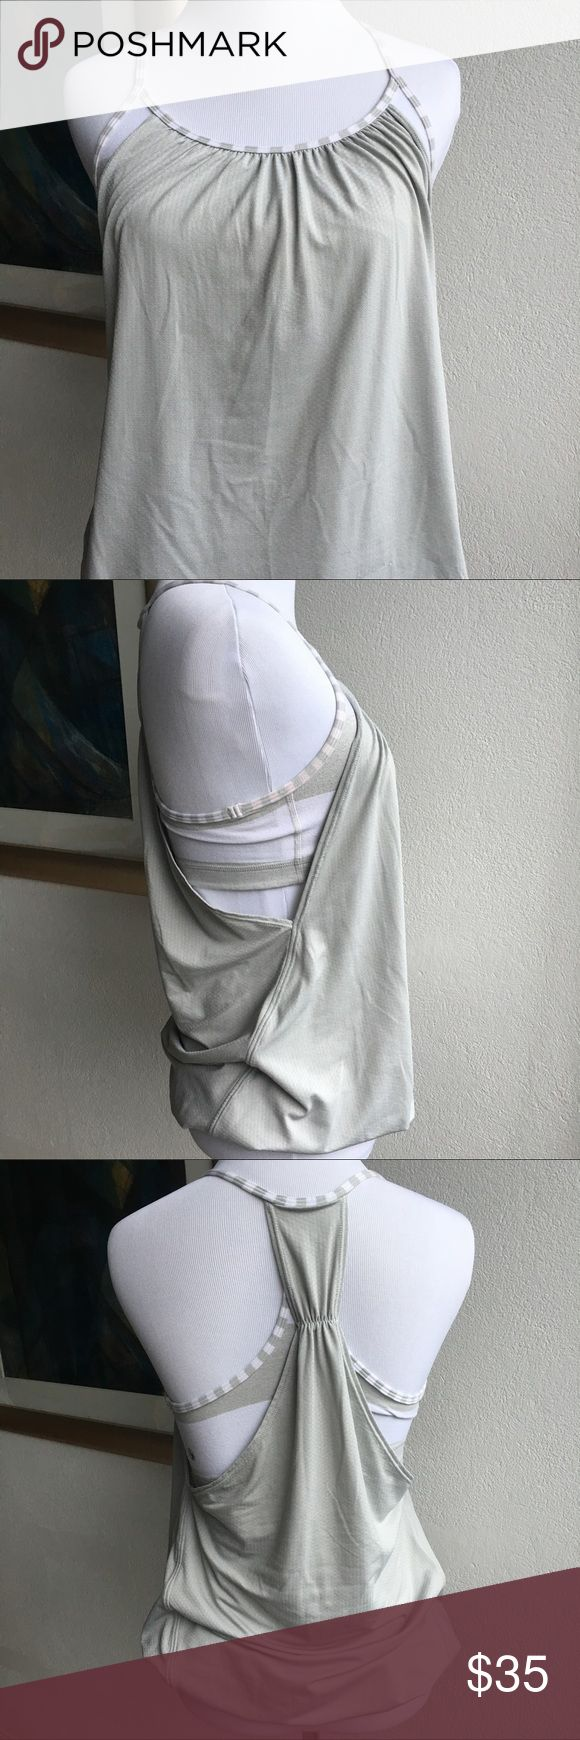 Lululemon Gray White No Limit Top size 6 Preowned authentic Lululemon Gray White No Limit Top size 6. Builtin bra, no pads. Please look at pictures for better reference. Happy shopping! lululemon athletica Tops Tank Tops